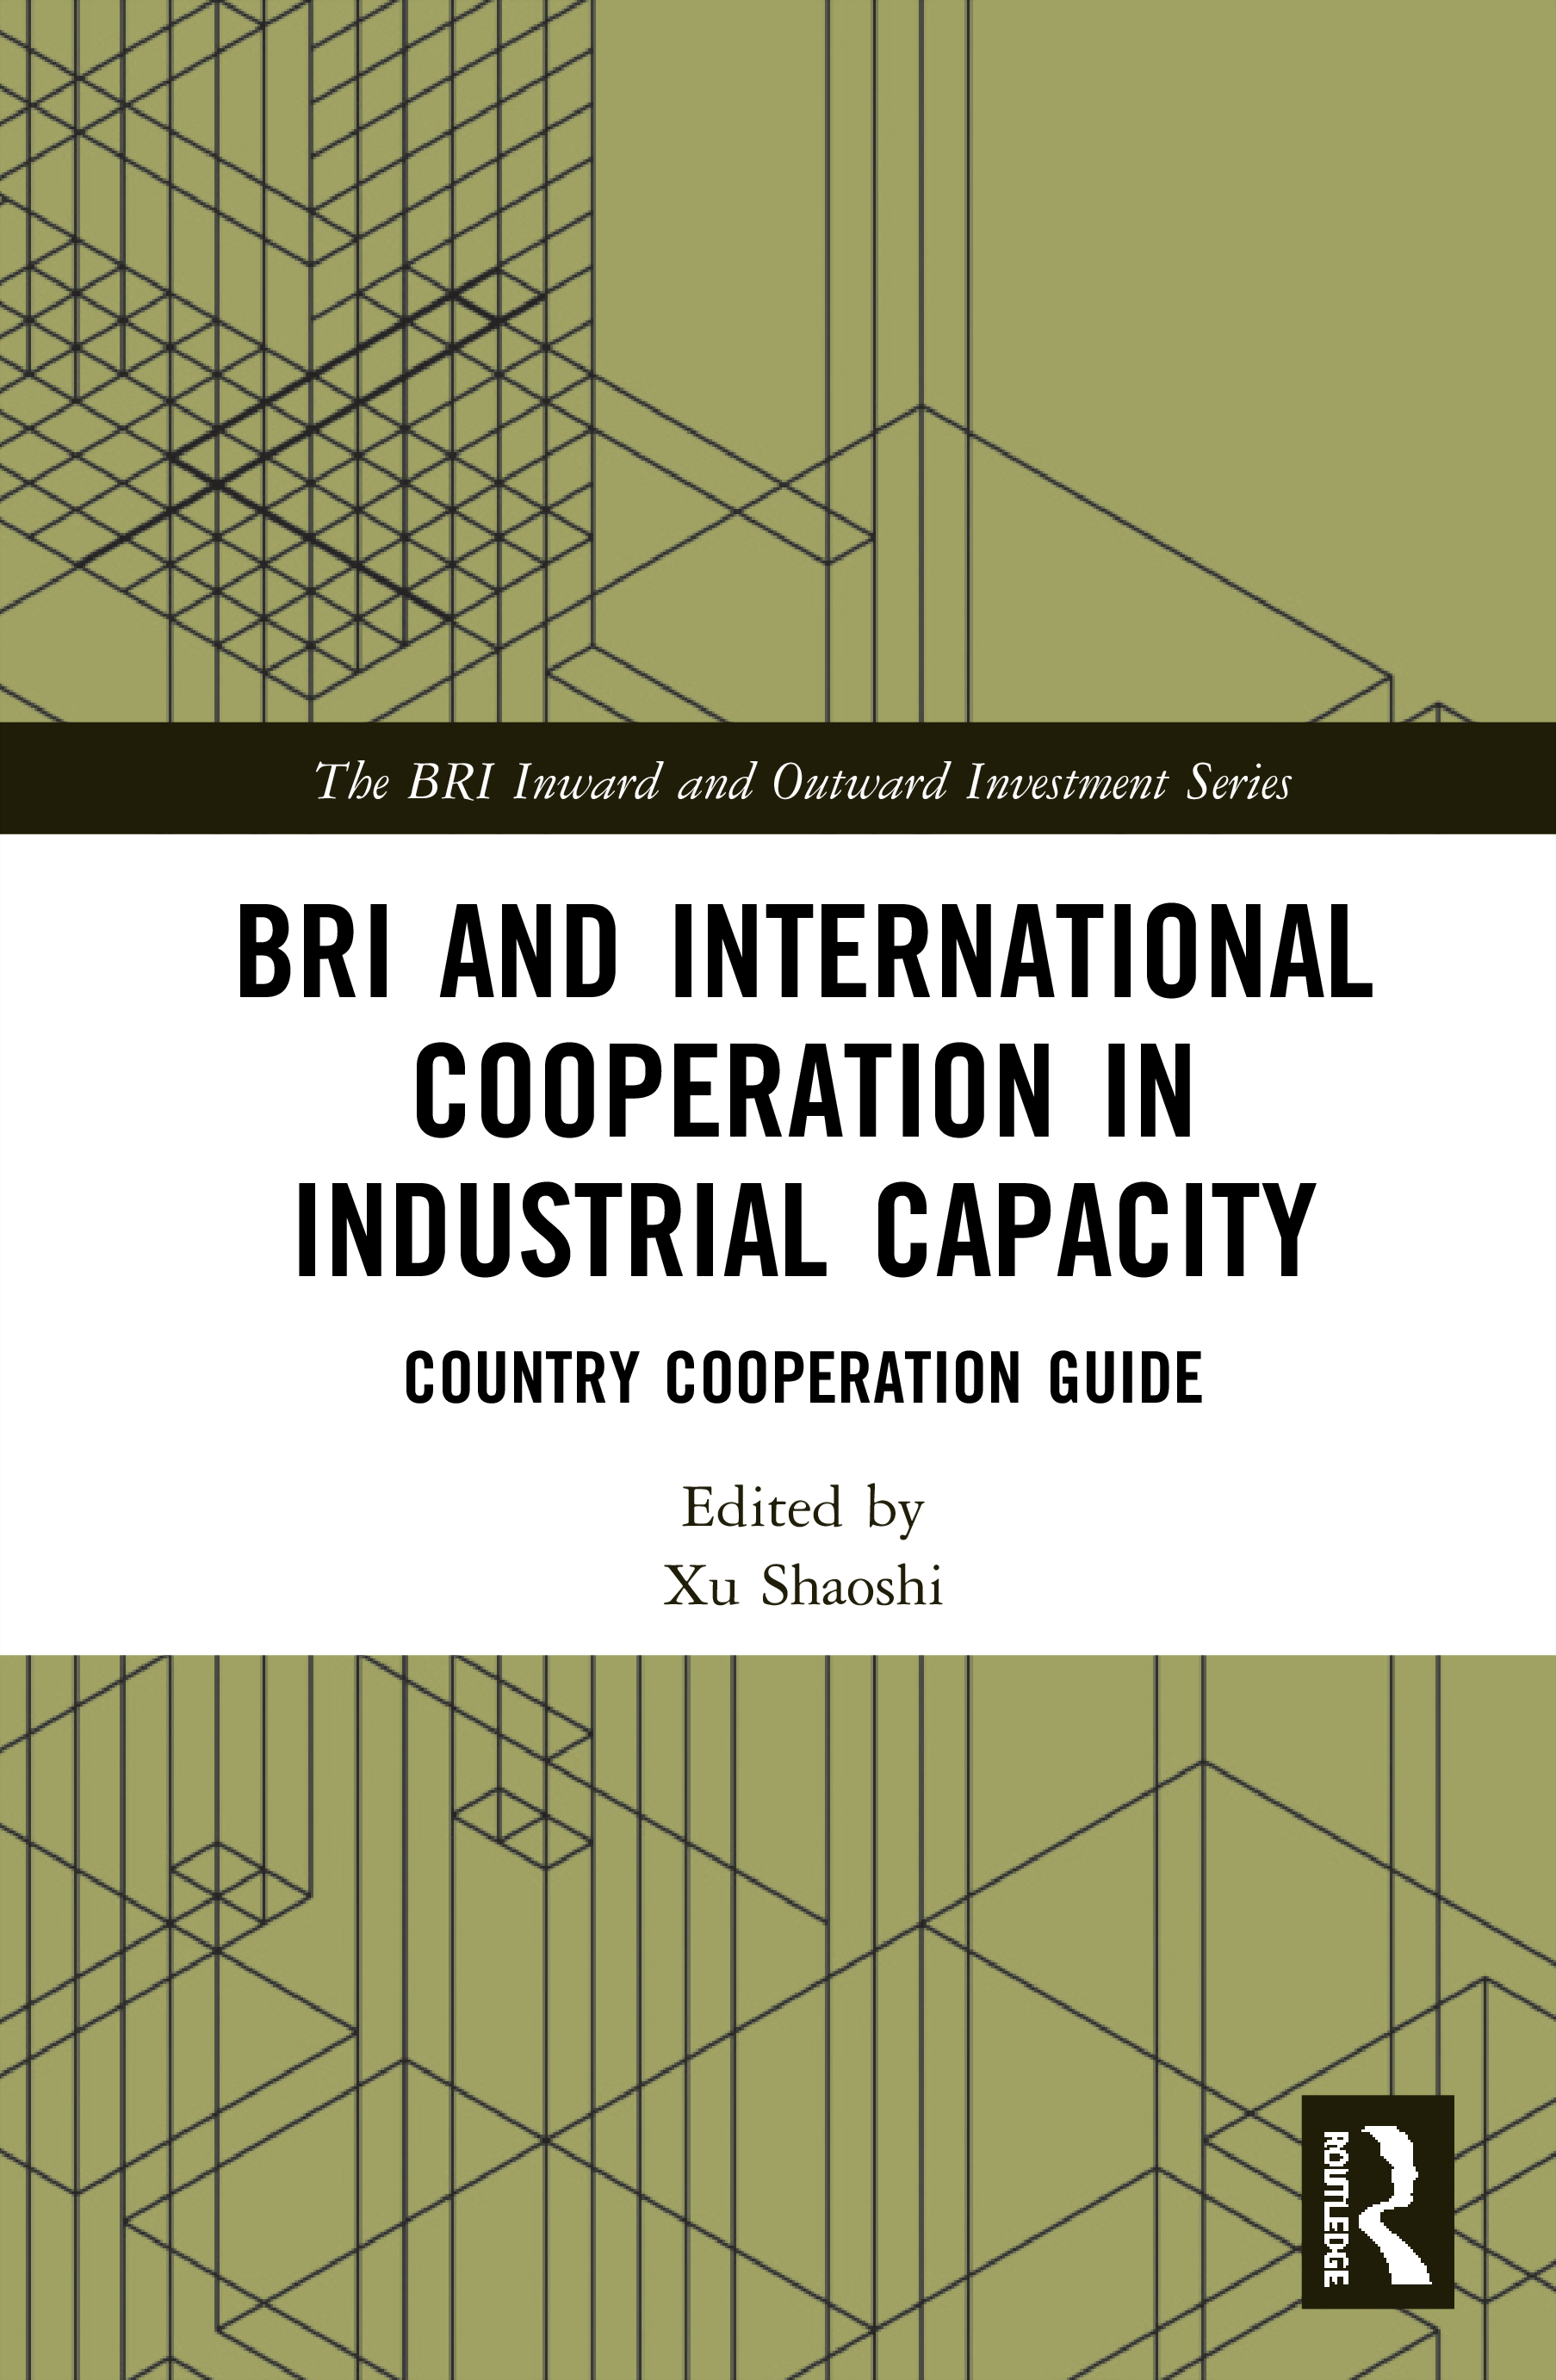 BRI and International Cooperation in Industrial Capacity: Country Cooperation Guide book cover